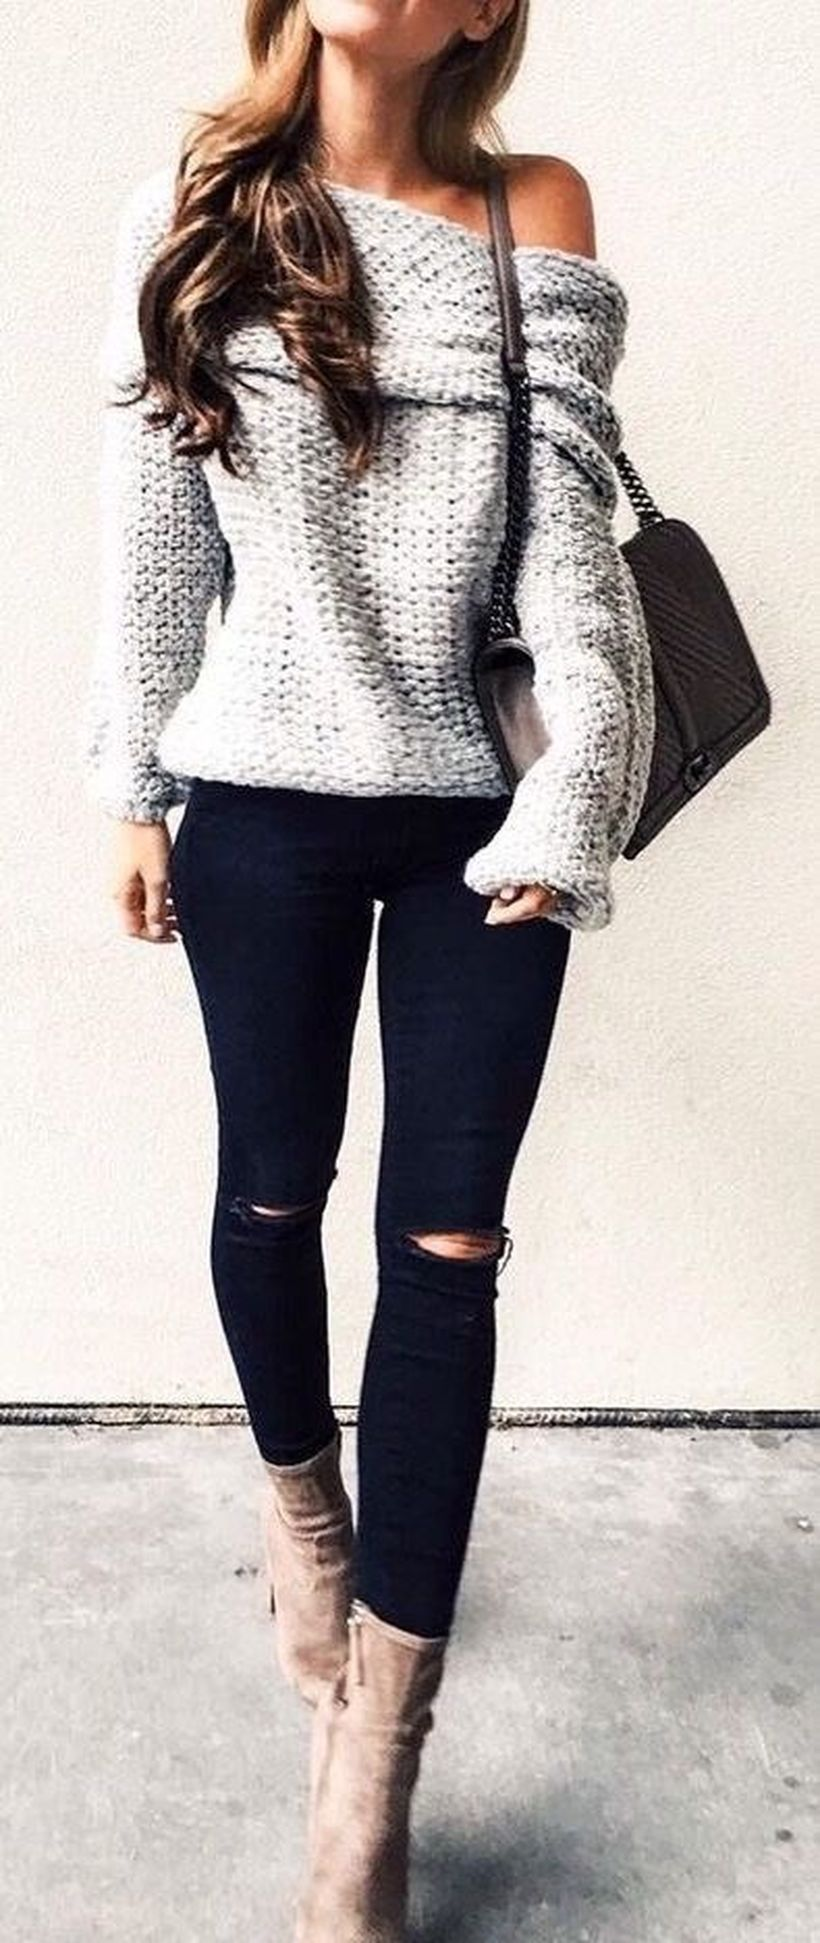 Fashionable outfit style for winter 2017 5